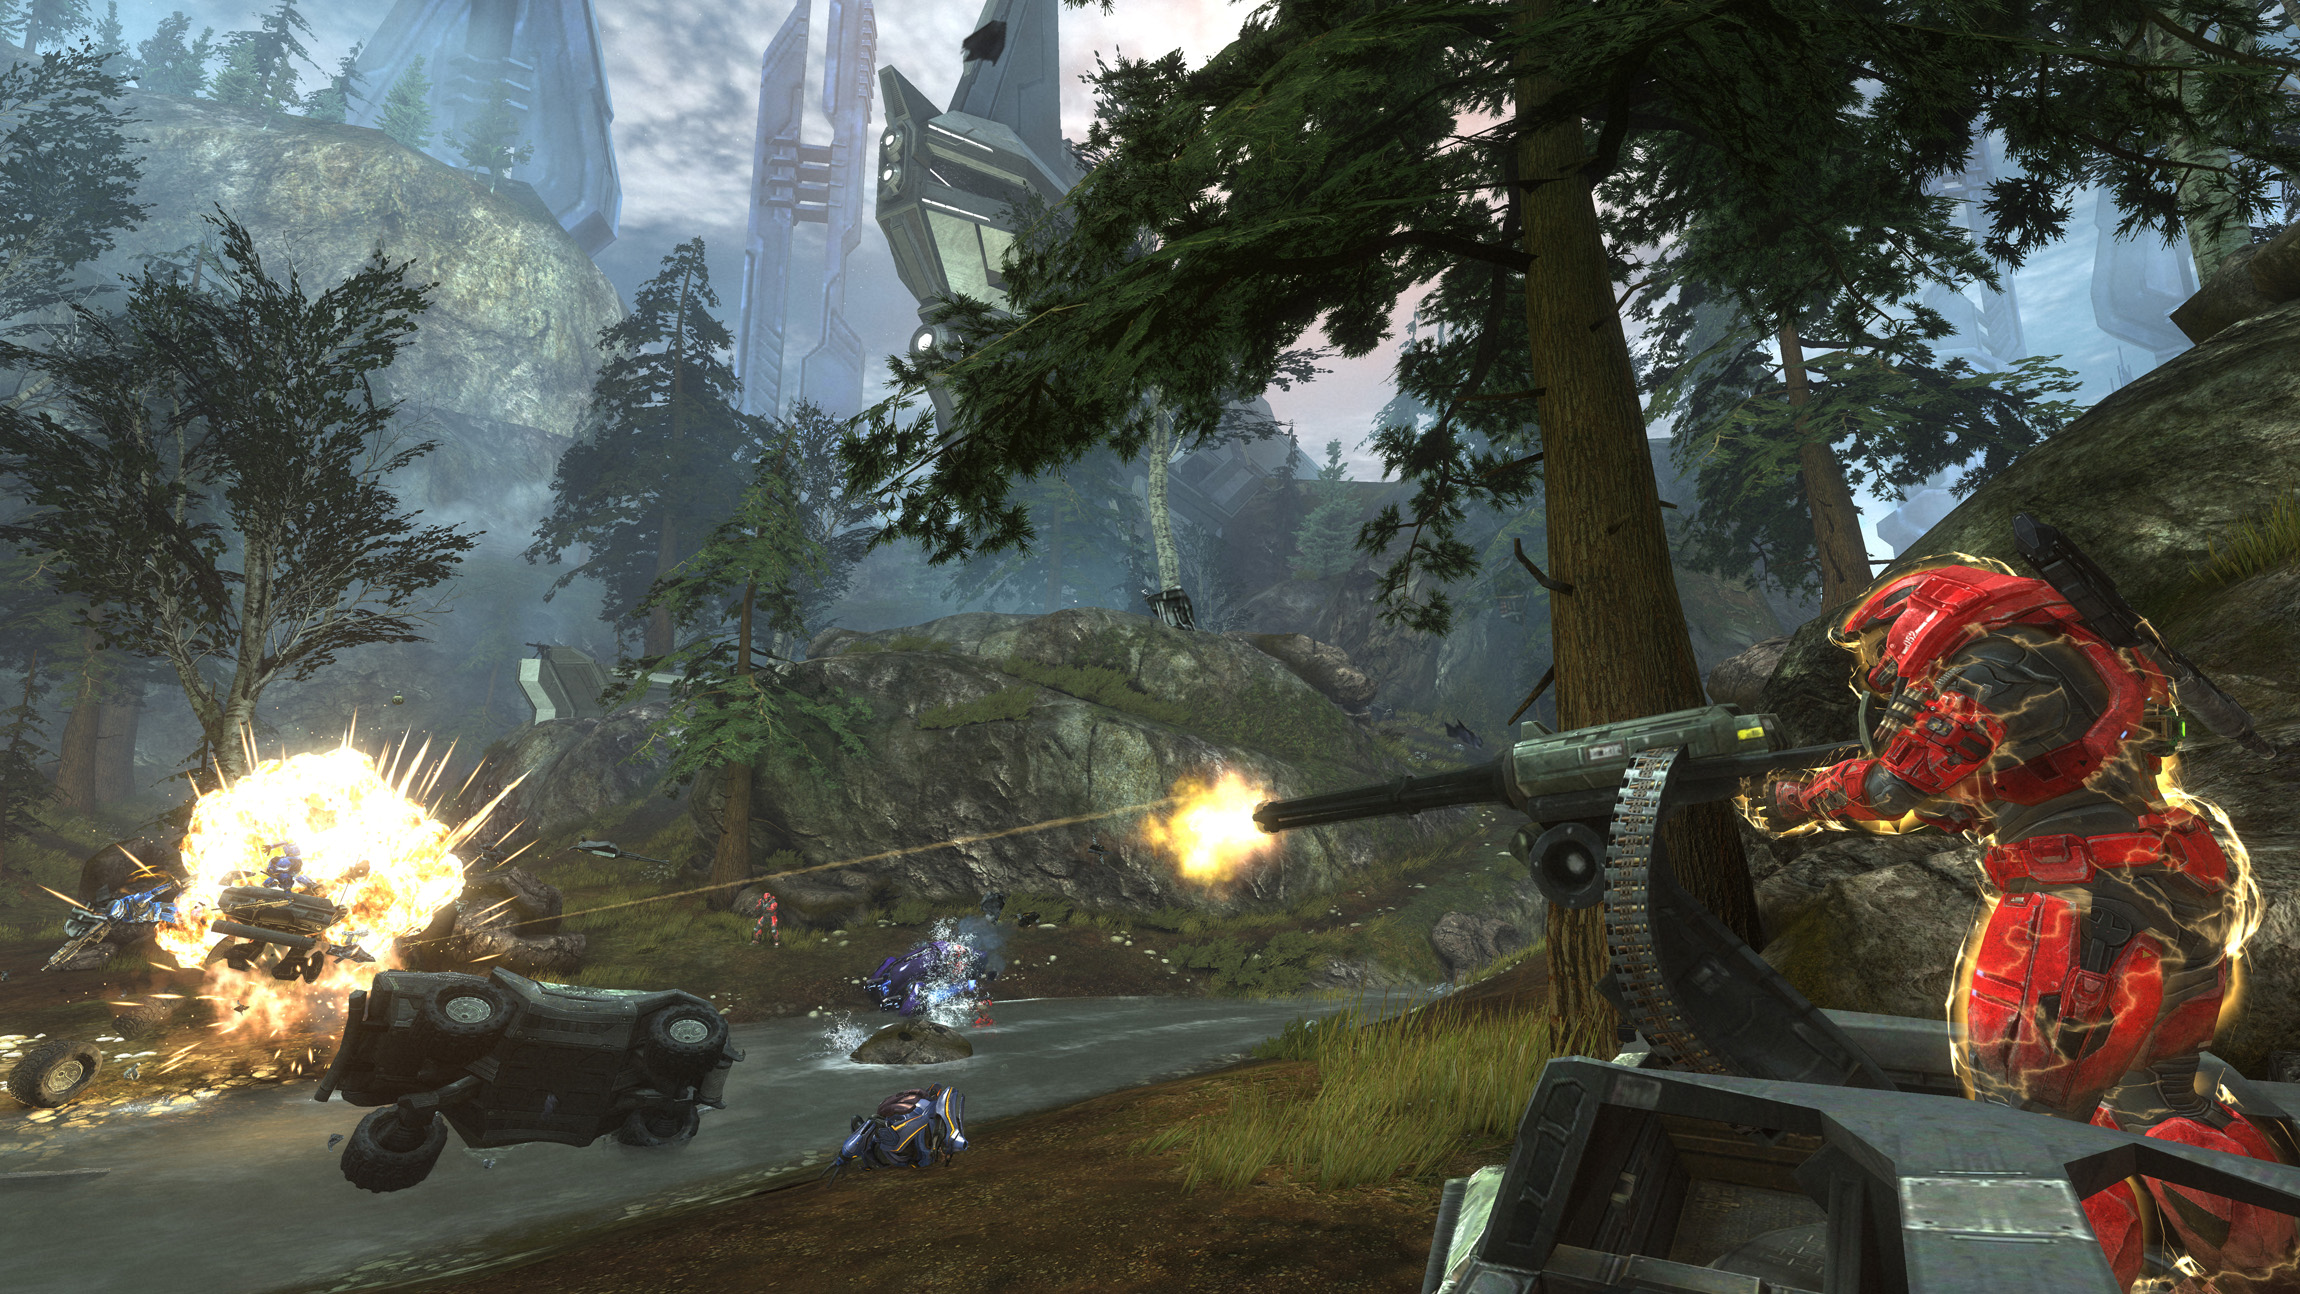 SGGAMINGINFO » Halo: Combat Evolved Anniversary gets some